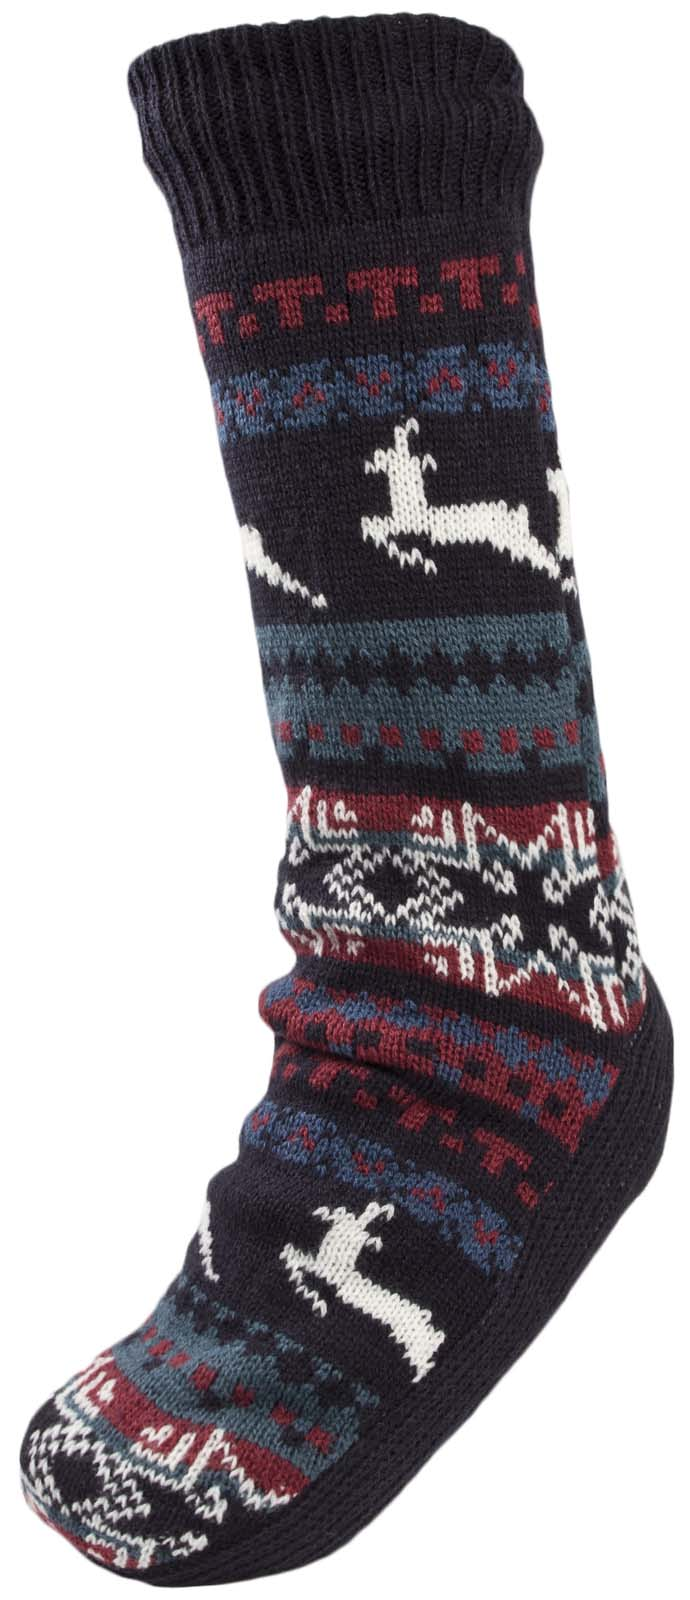 Mens Cosy Slipper Socks Warm Lined Knitted Bed Socks Booties Xmas ...